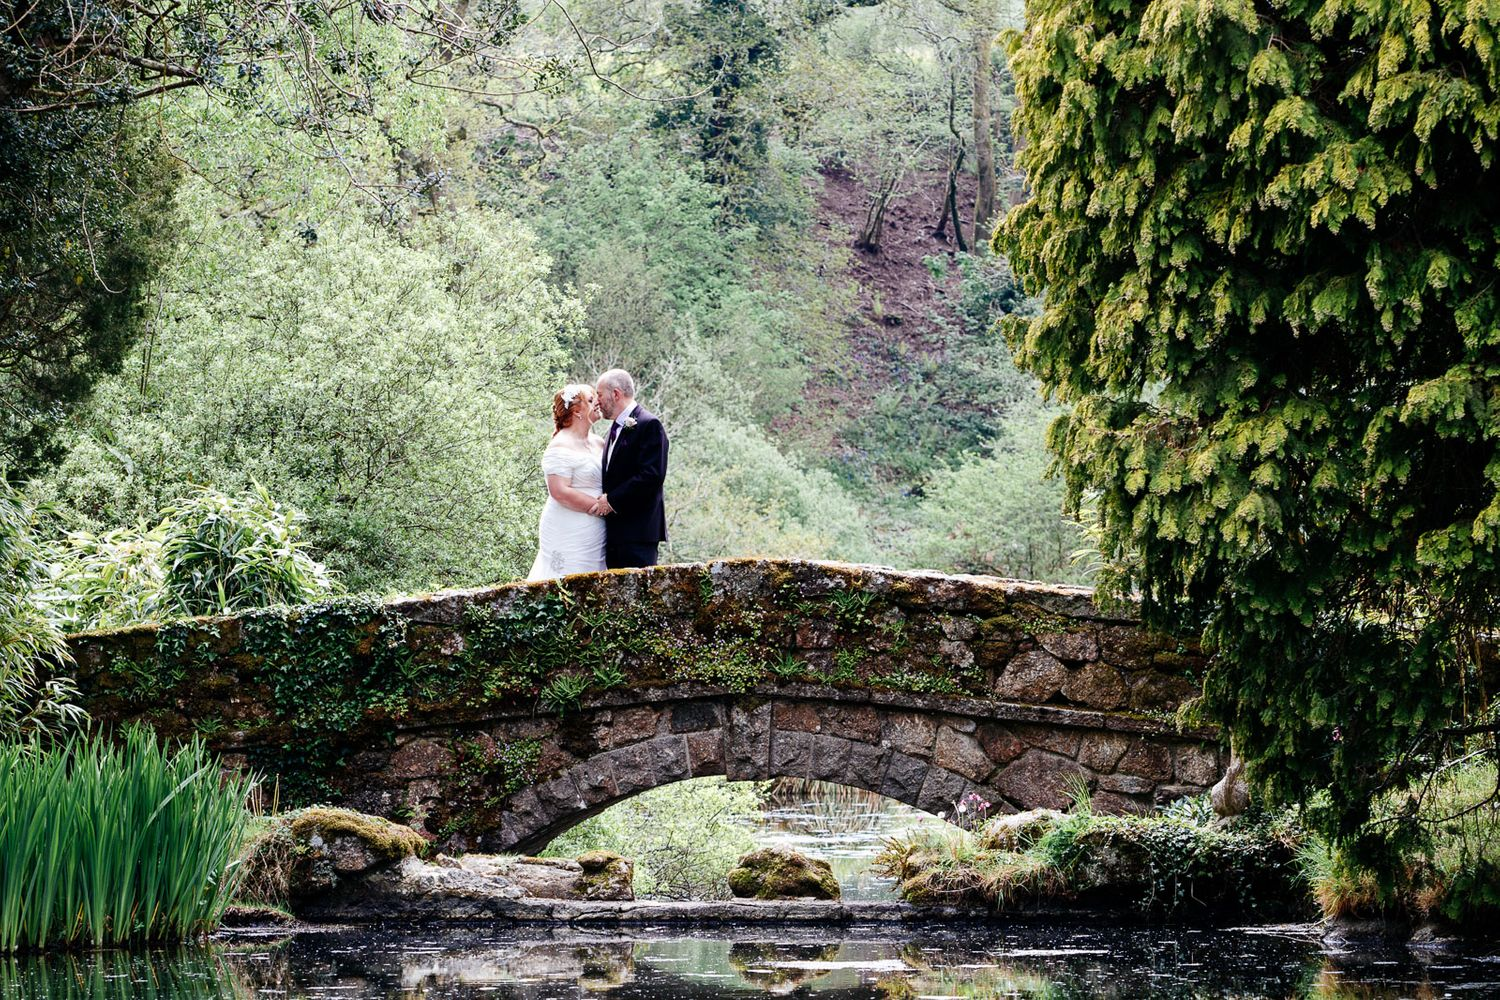 Bovey Castle wedding photographer captures image of bride and groom stood on a bridge